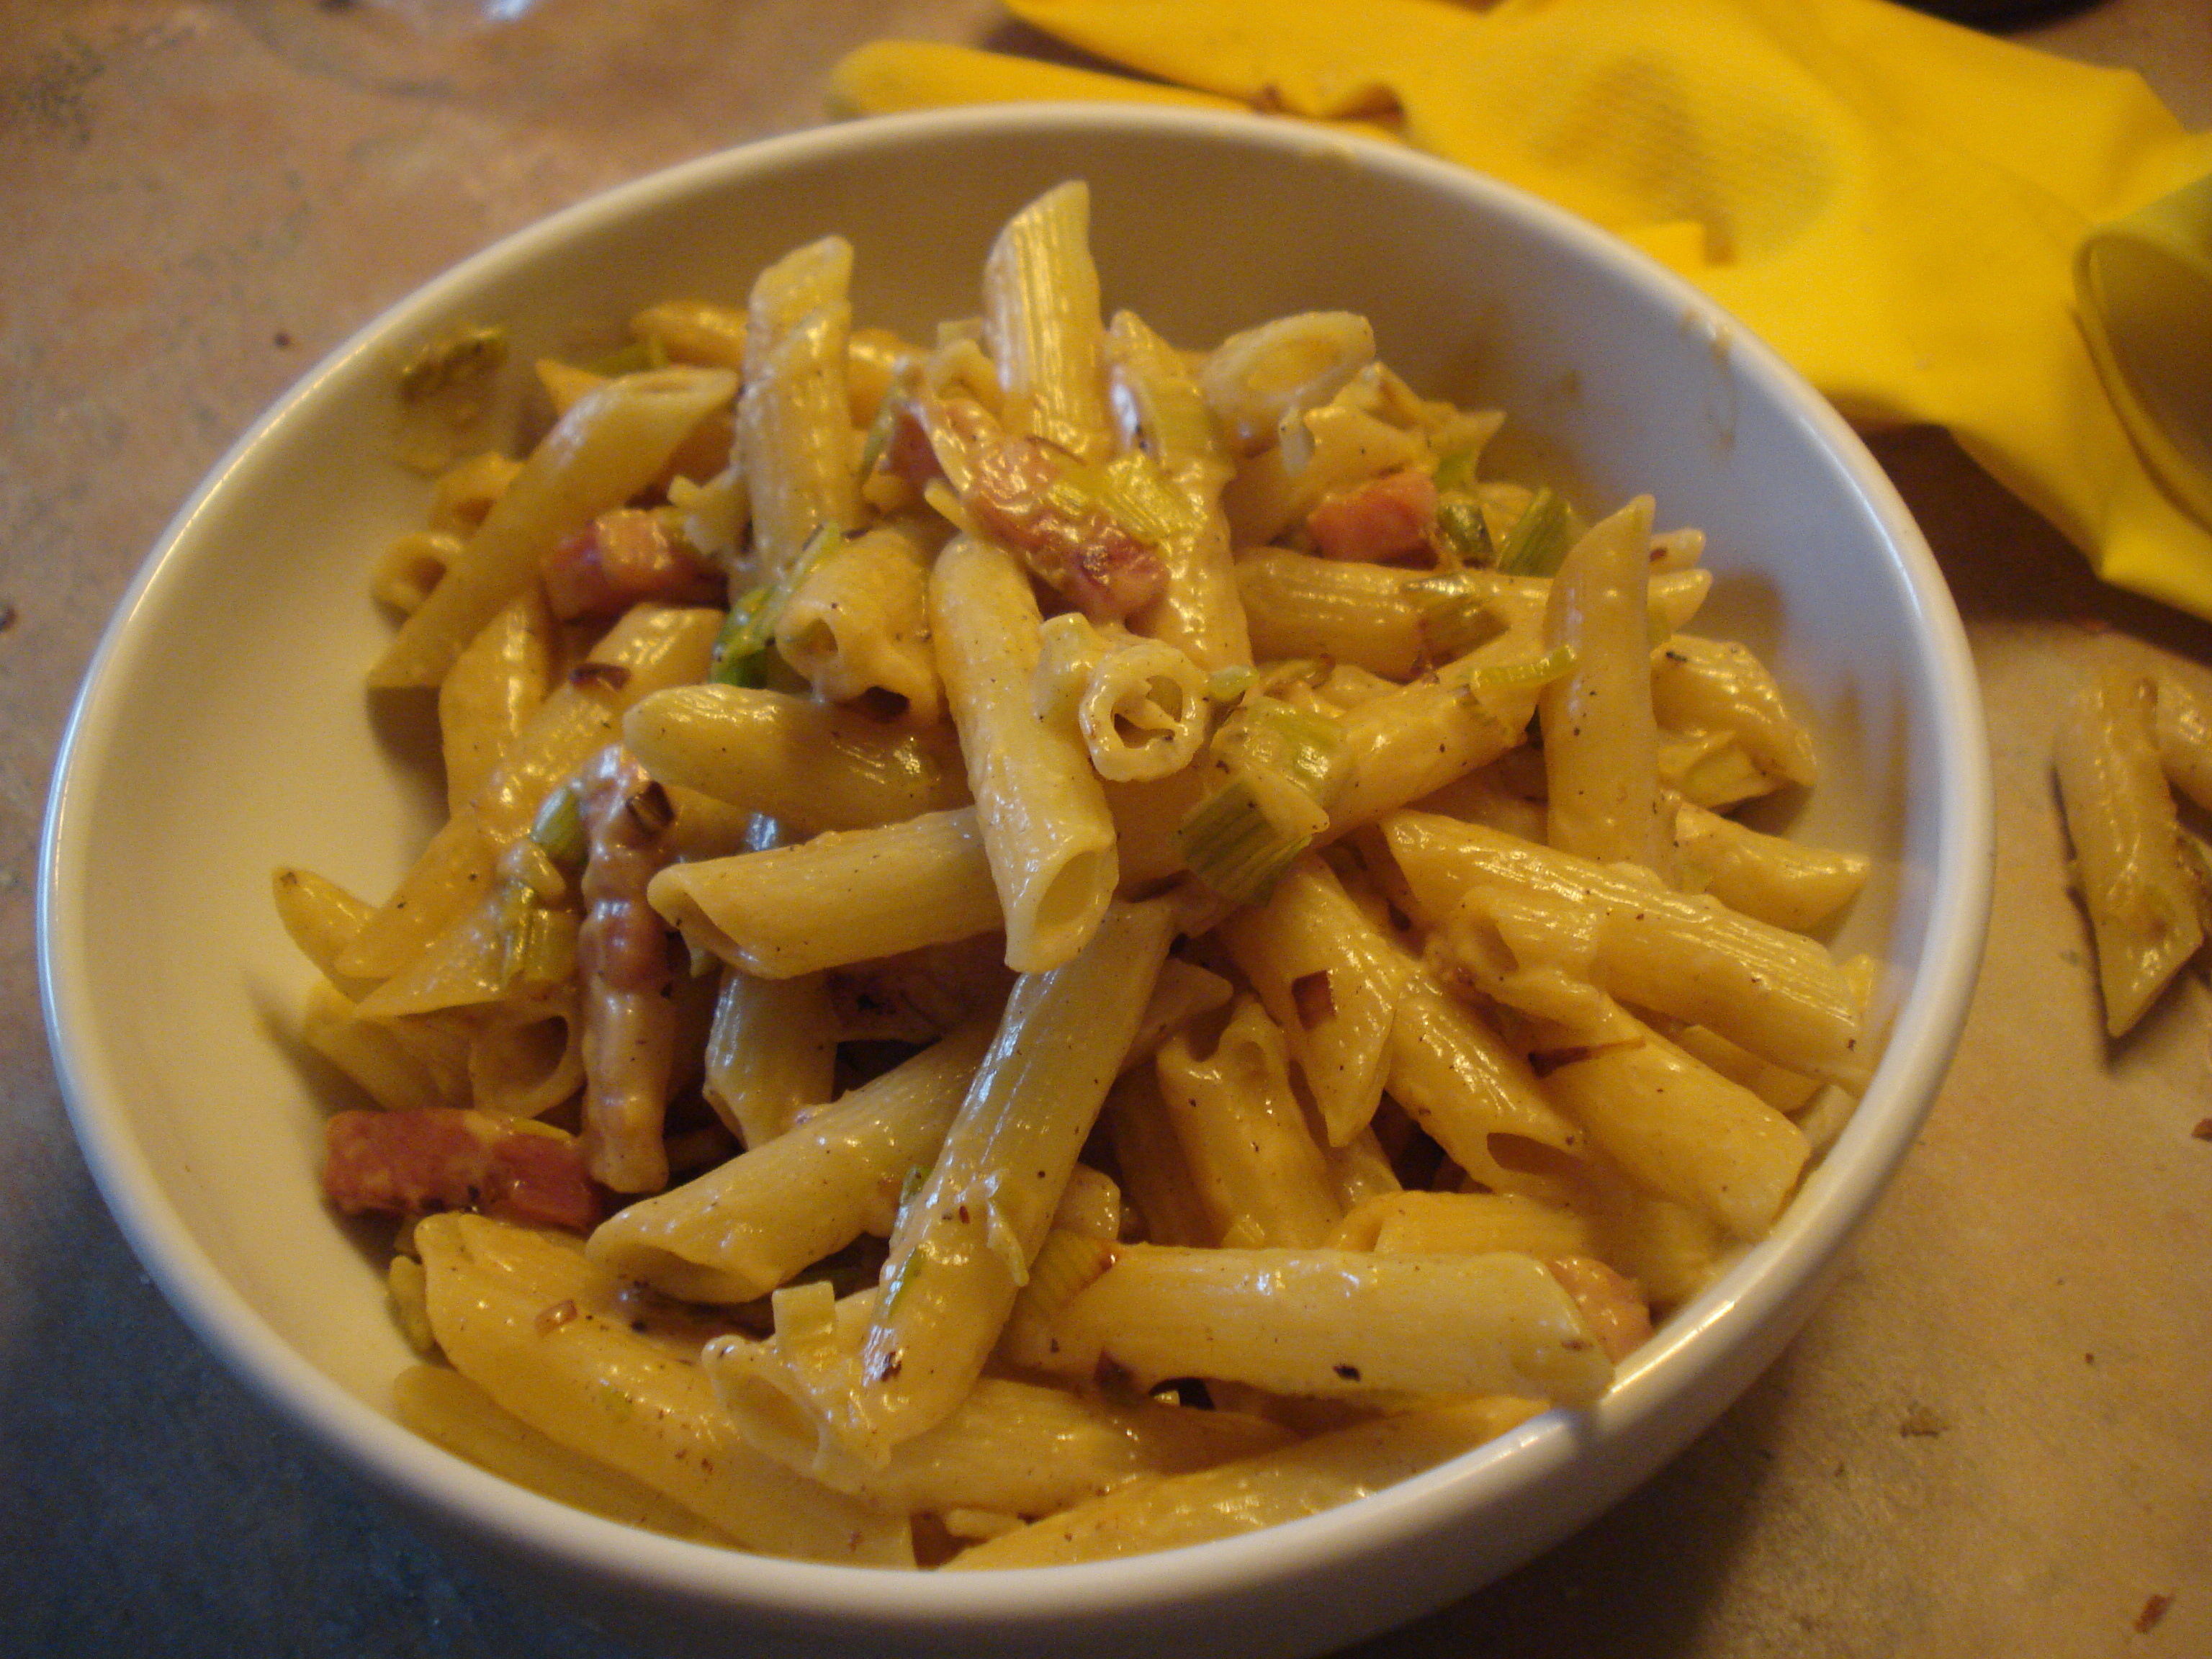 cheese leek and ham pasta 'n' sauce